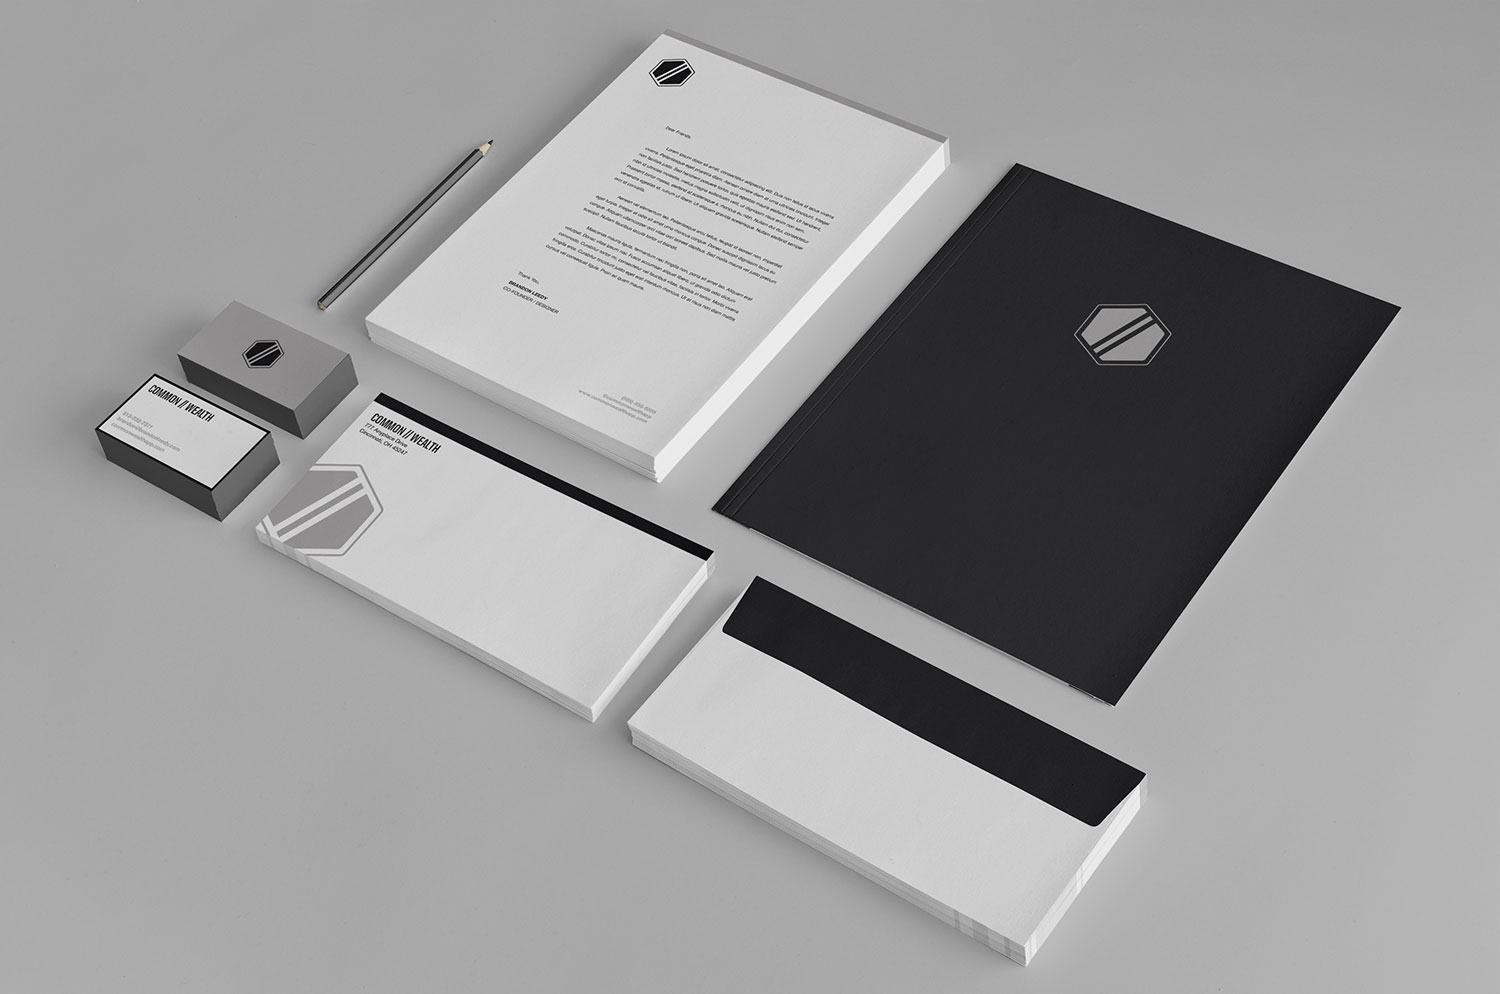 Stationery System for the Common//Wealth brand.